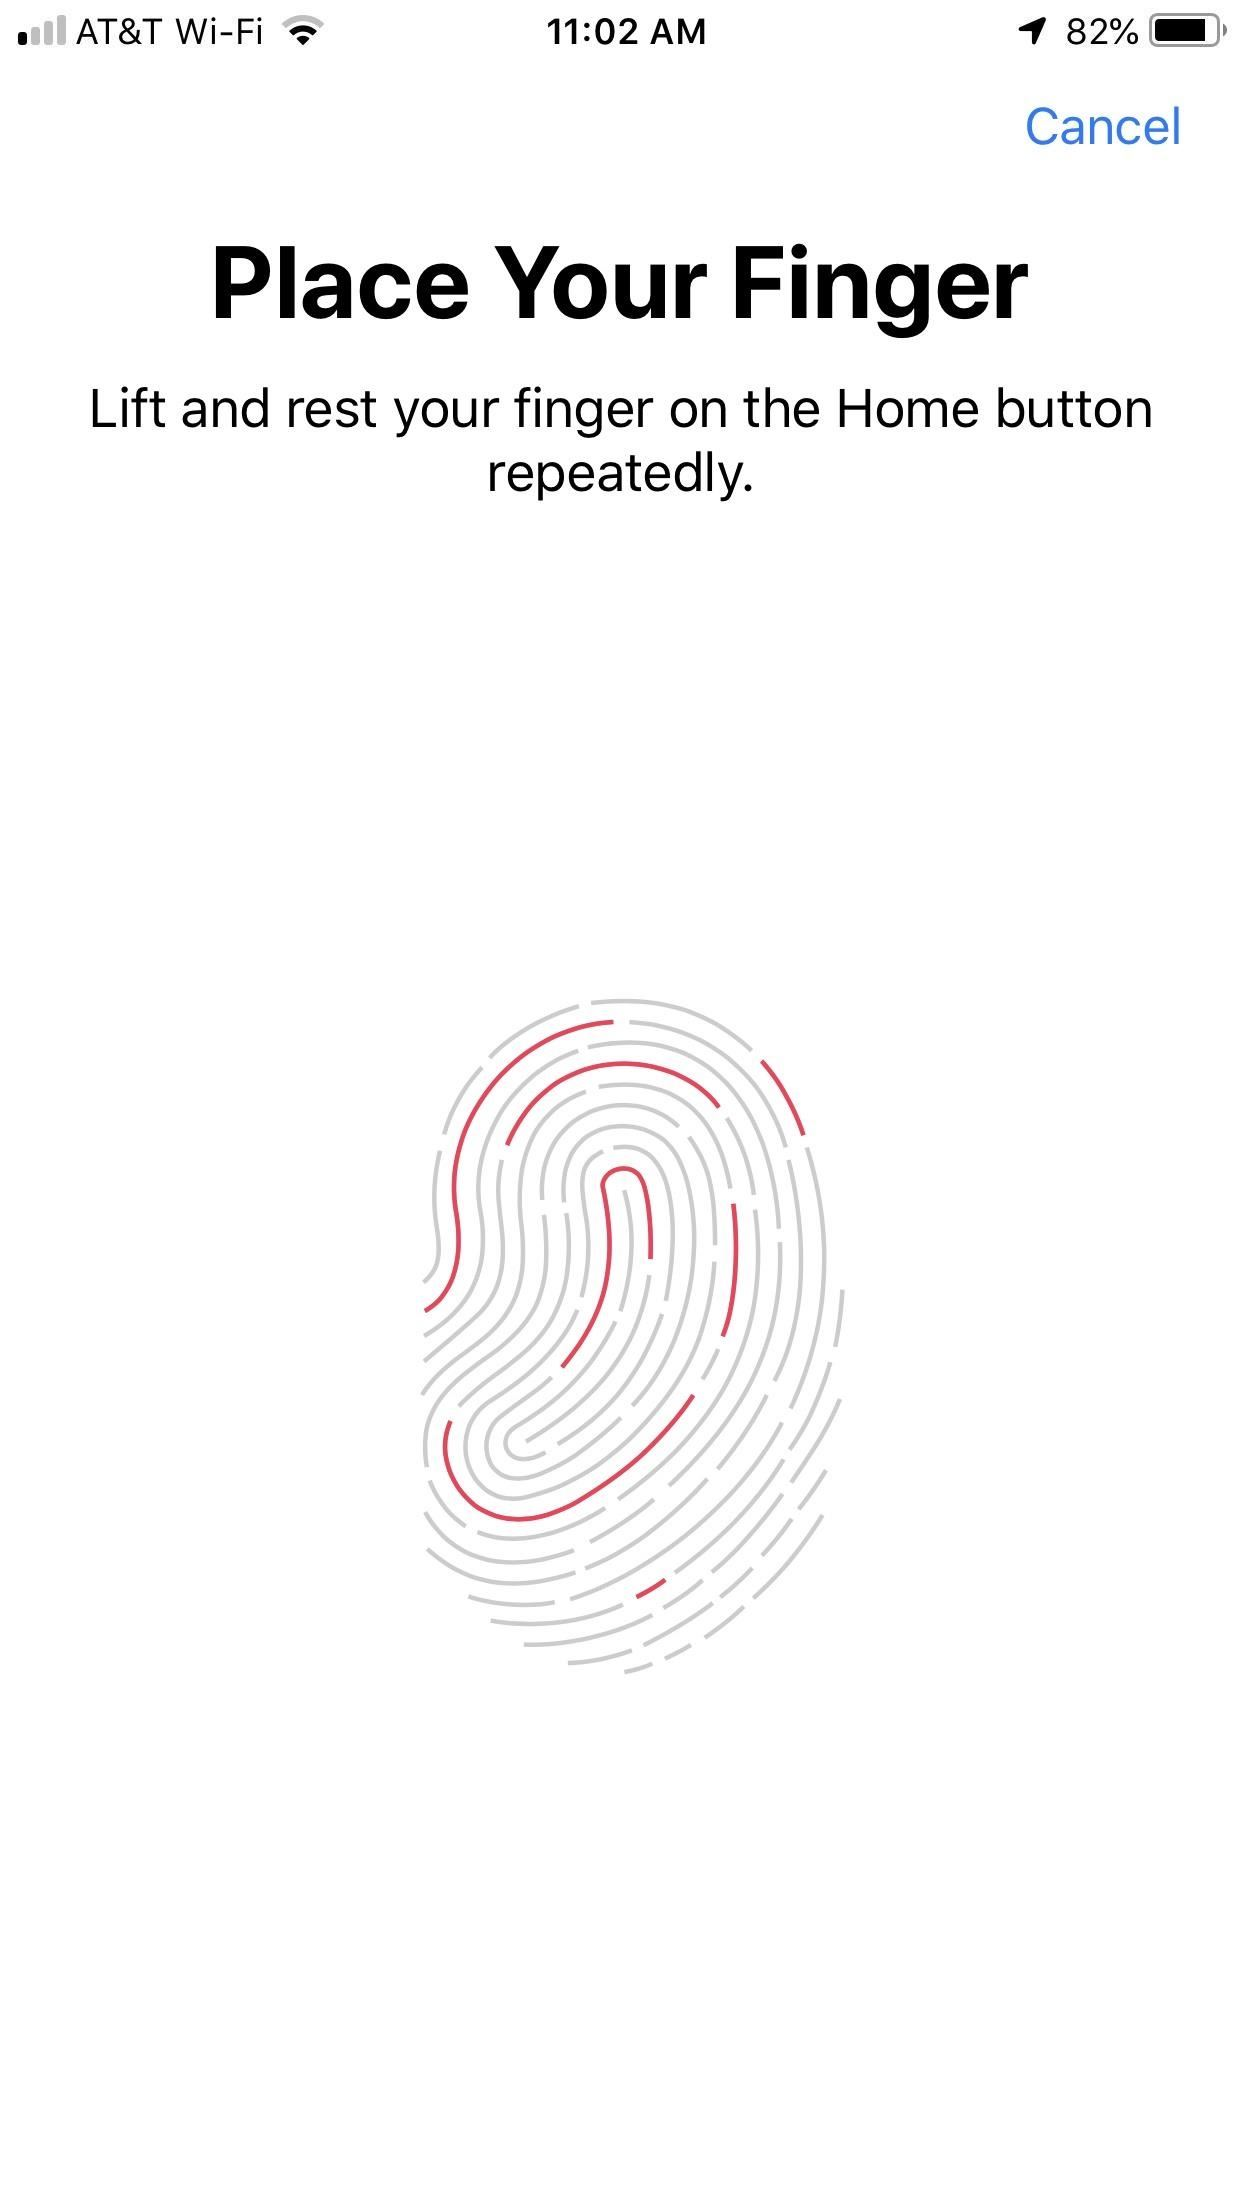 How to use all 10 fingerprints for the Touch ID on your iPhone - not just five of them